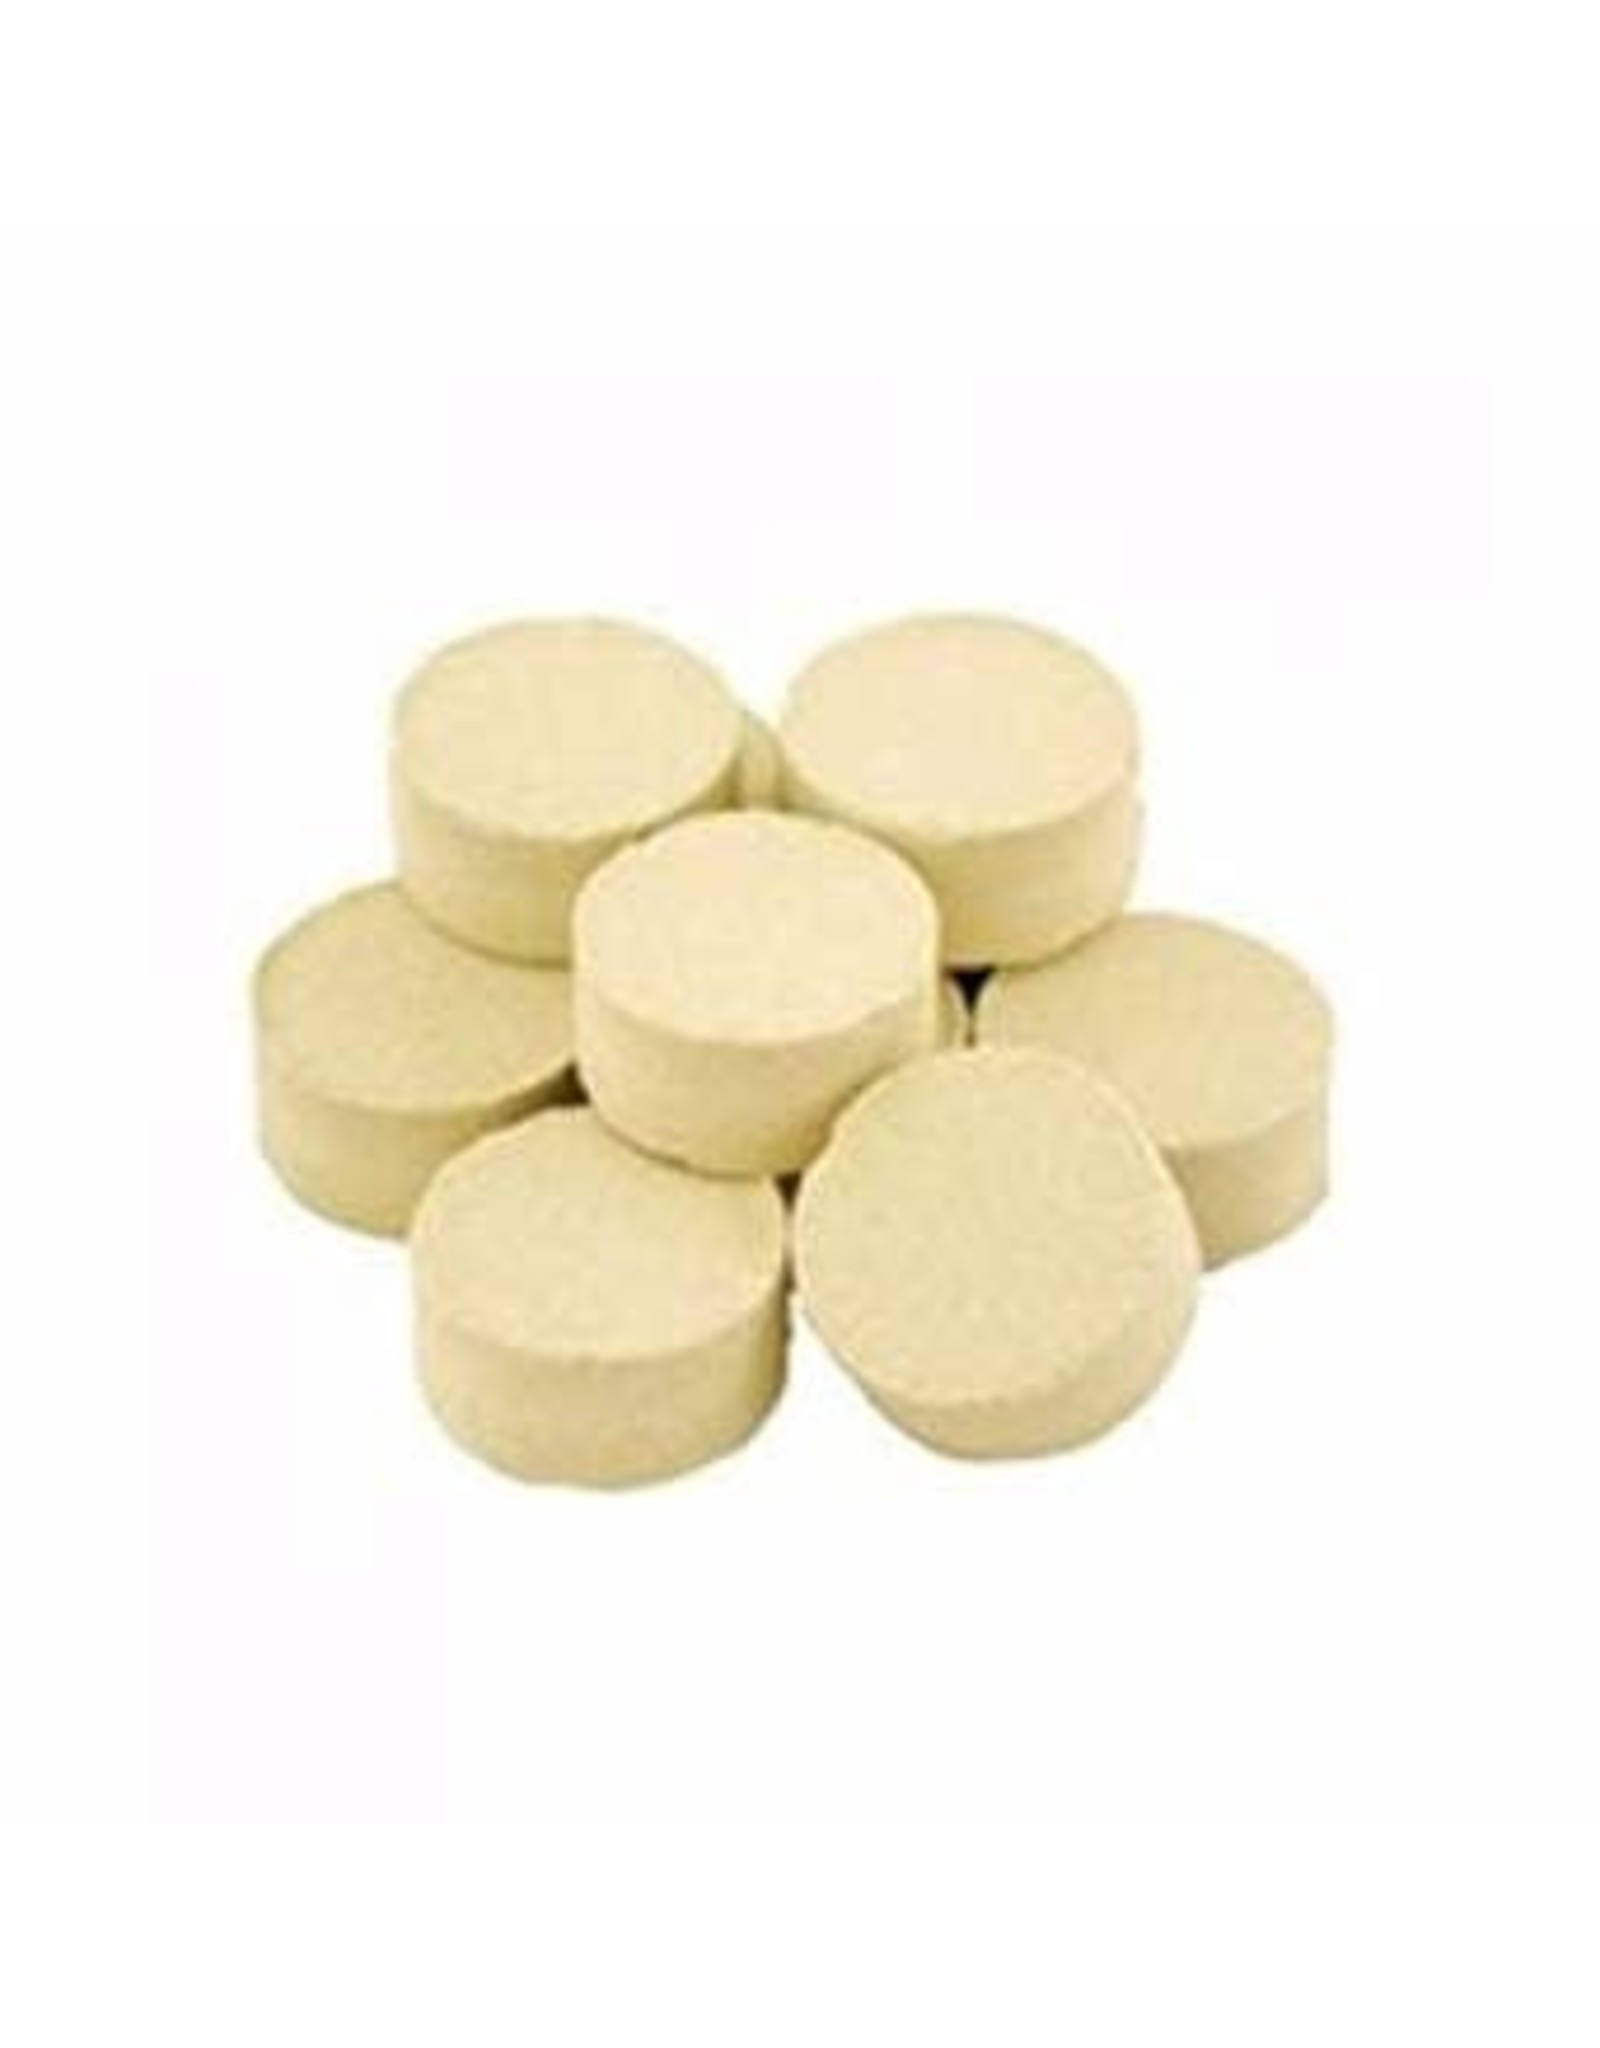 Whirlfloc Tablets 5 LB